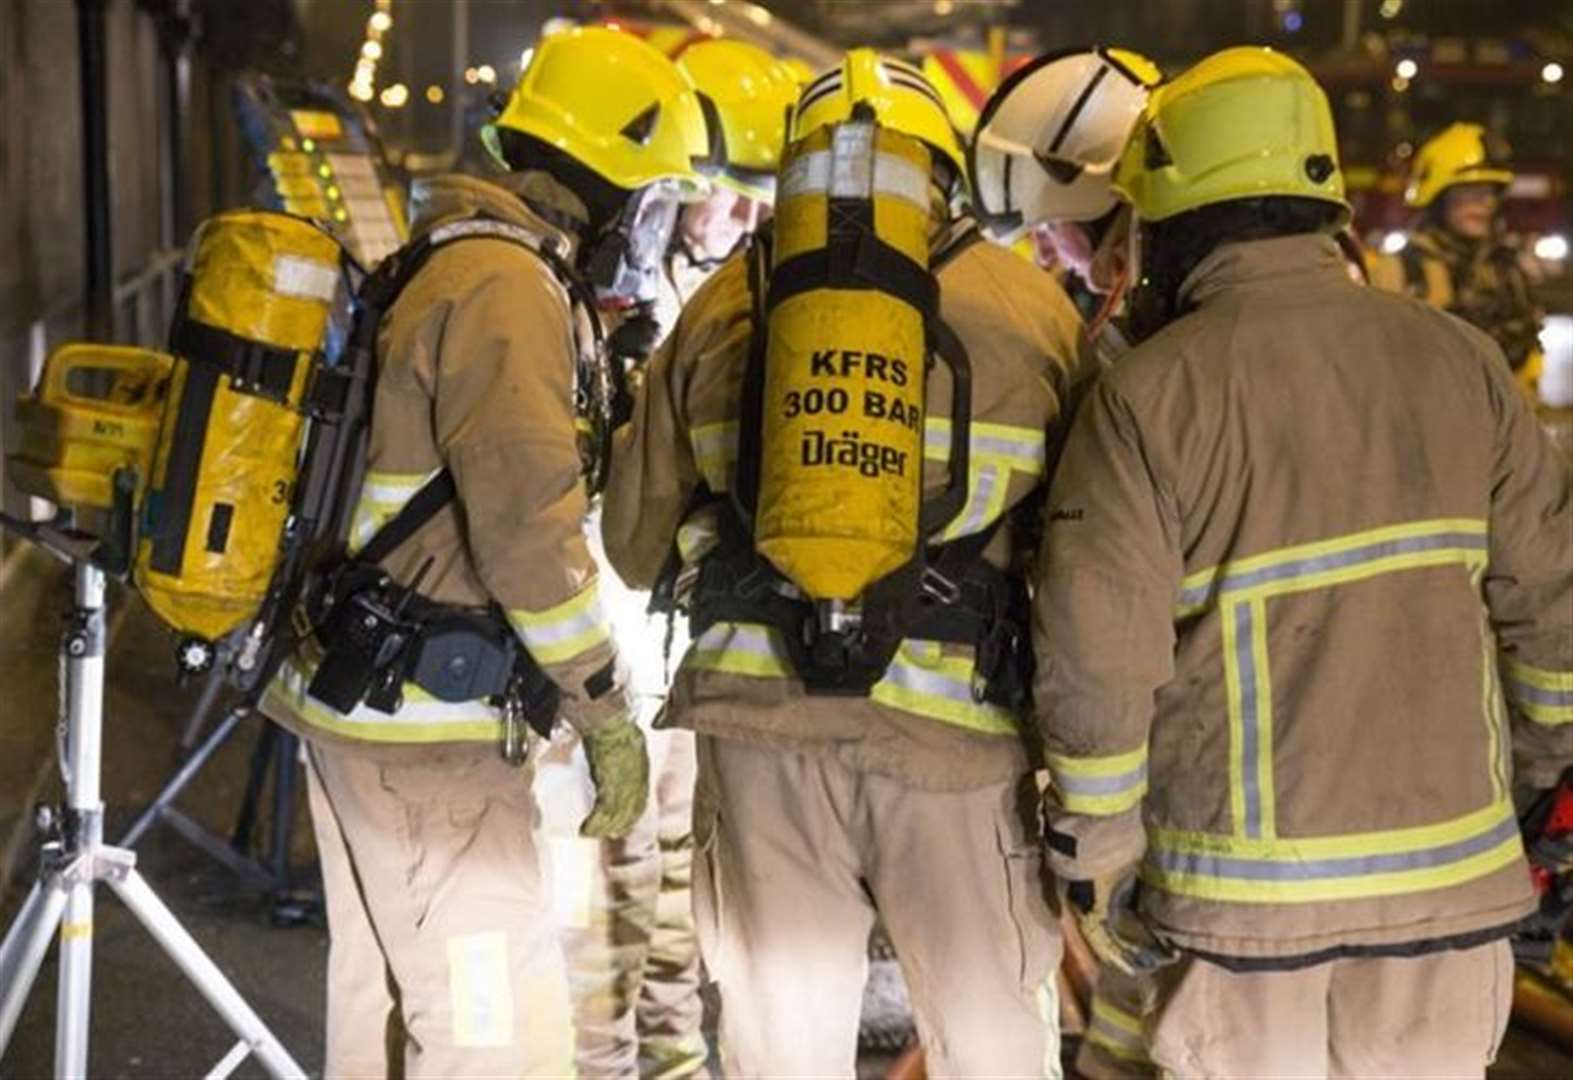 Discarded barbecue 'caused beach hut fire'